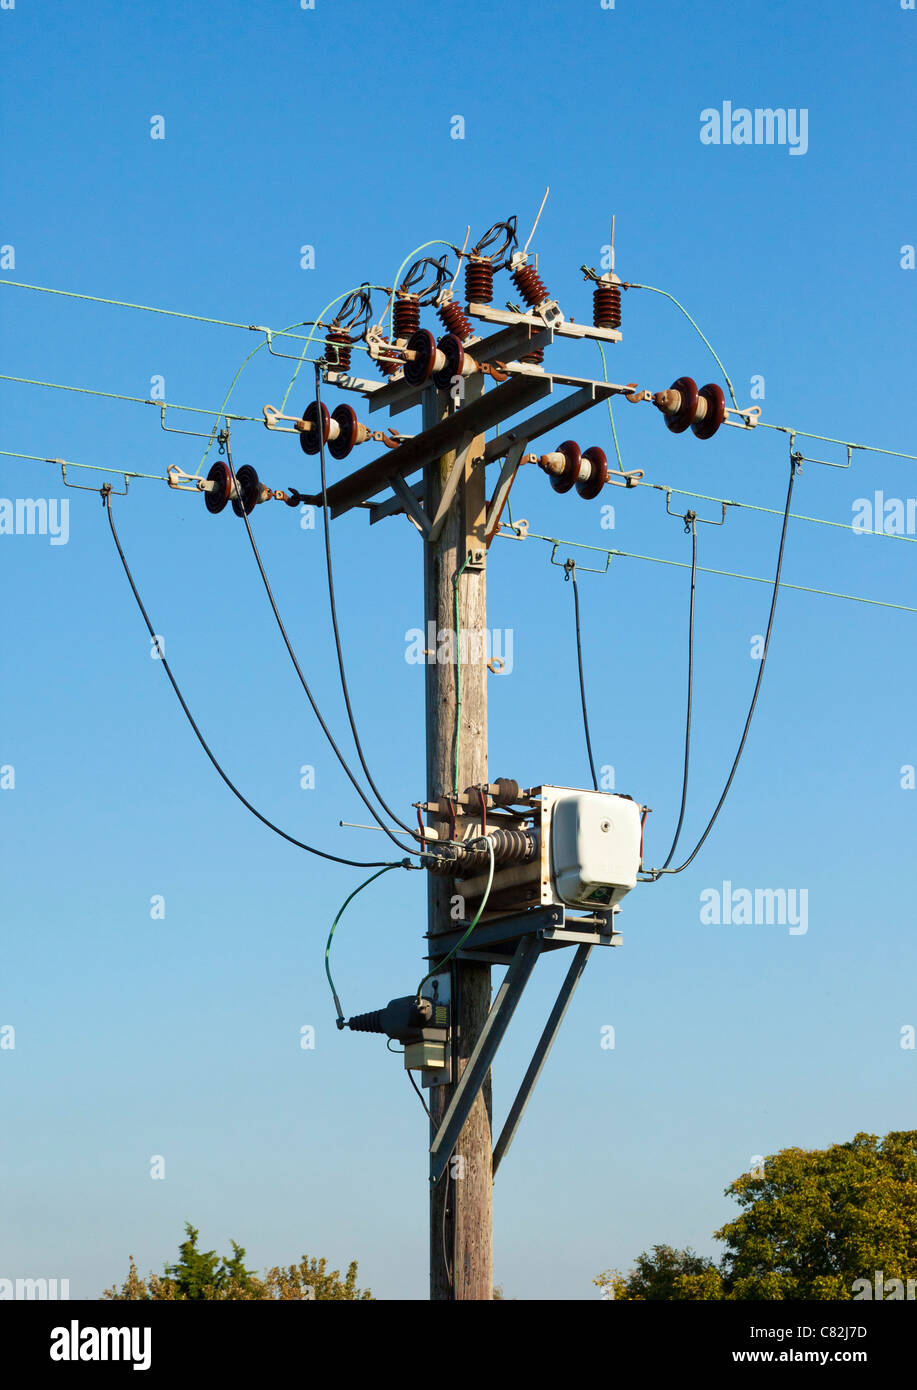 electricity supply pole, contactor relay, cables and insulators - Stock Image